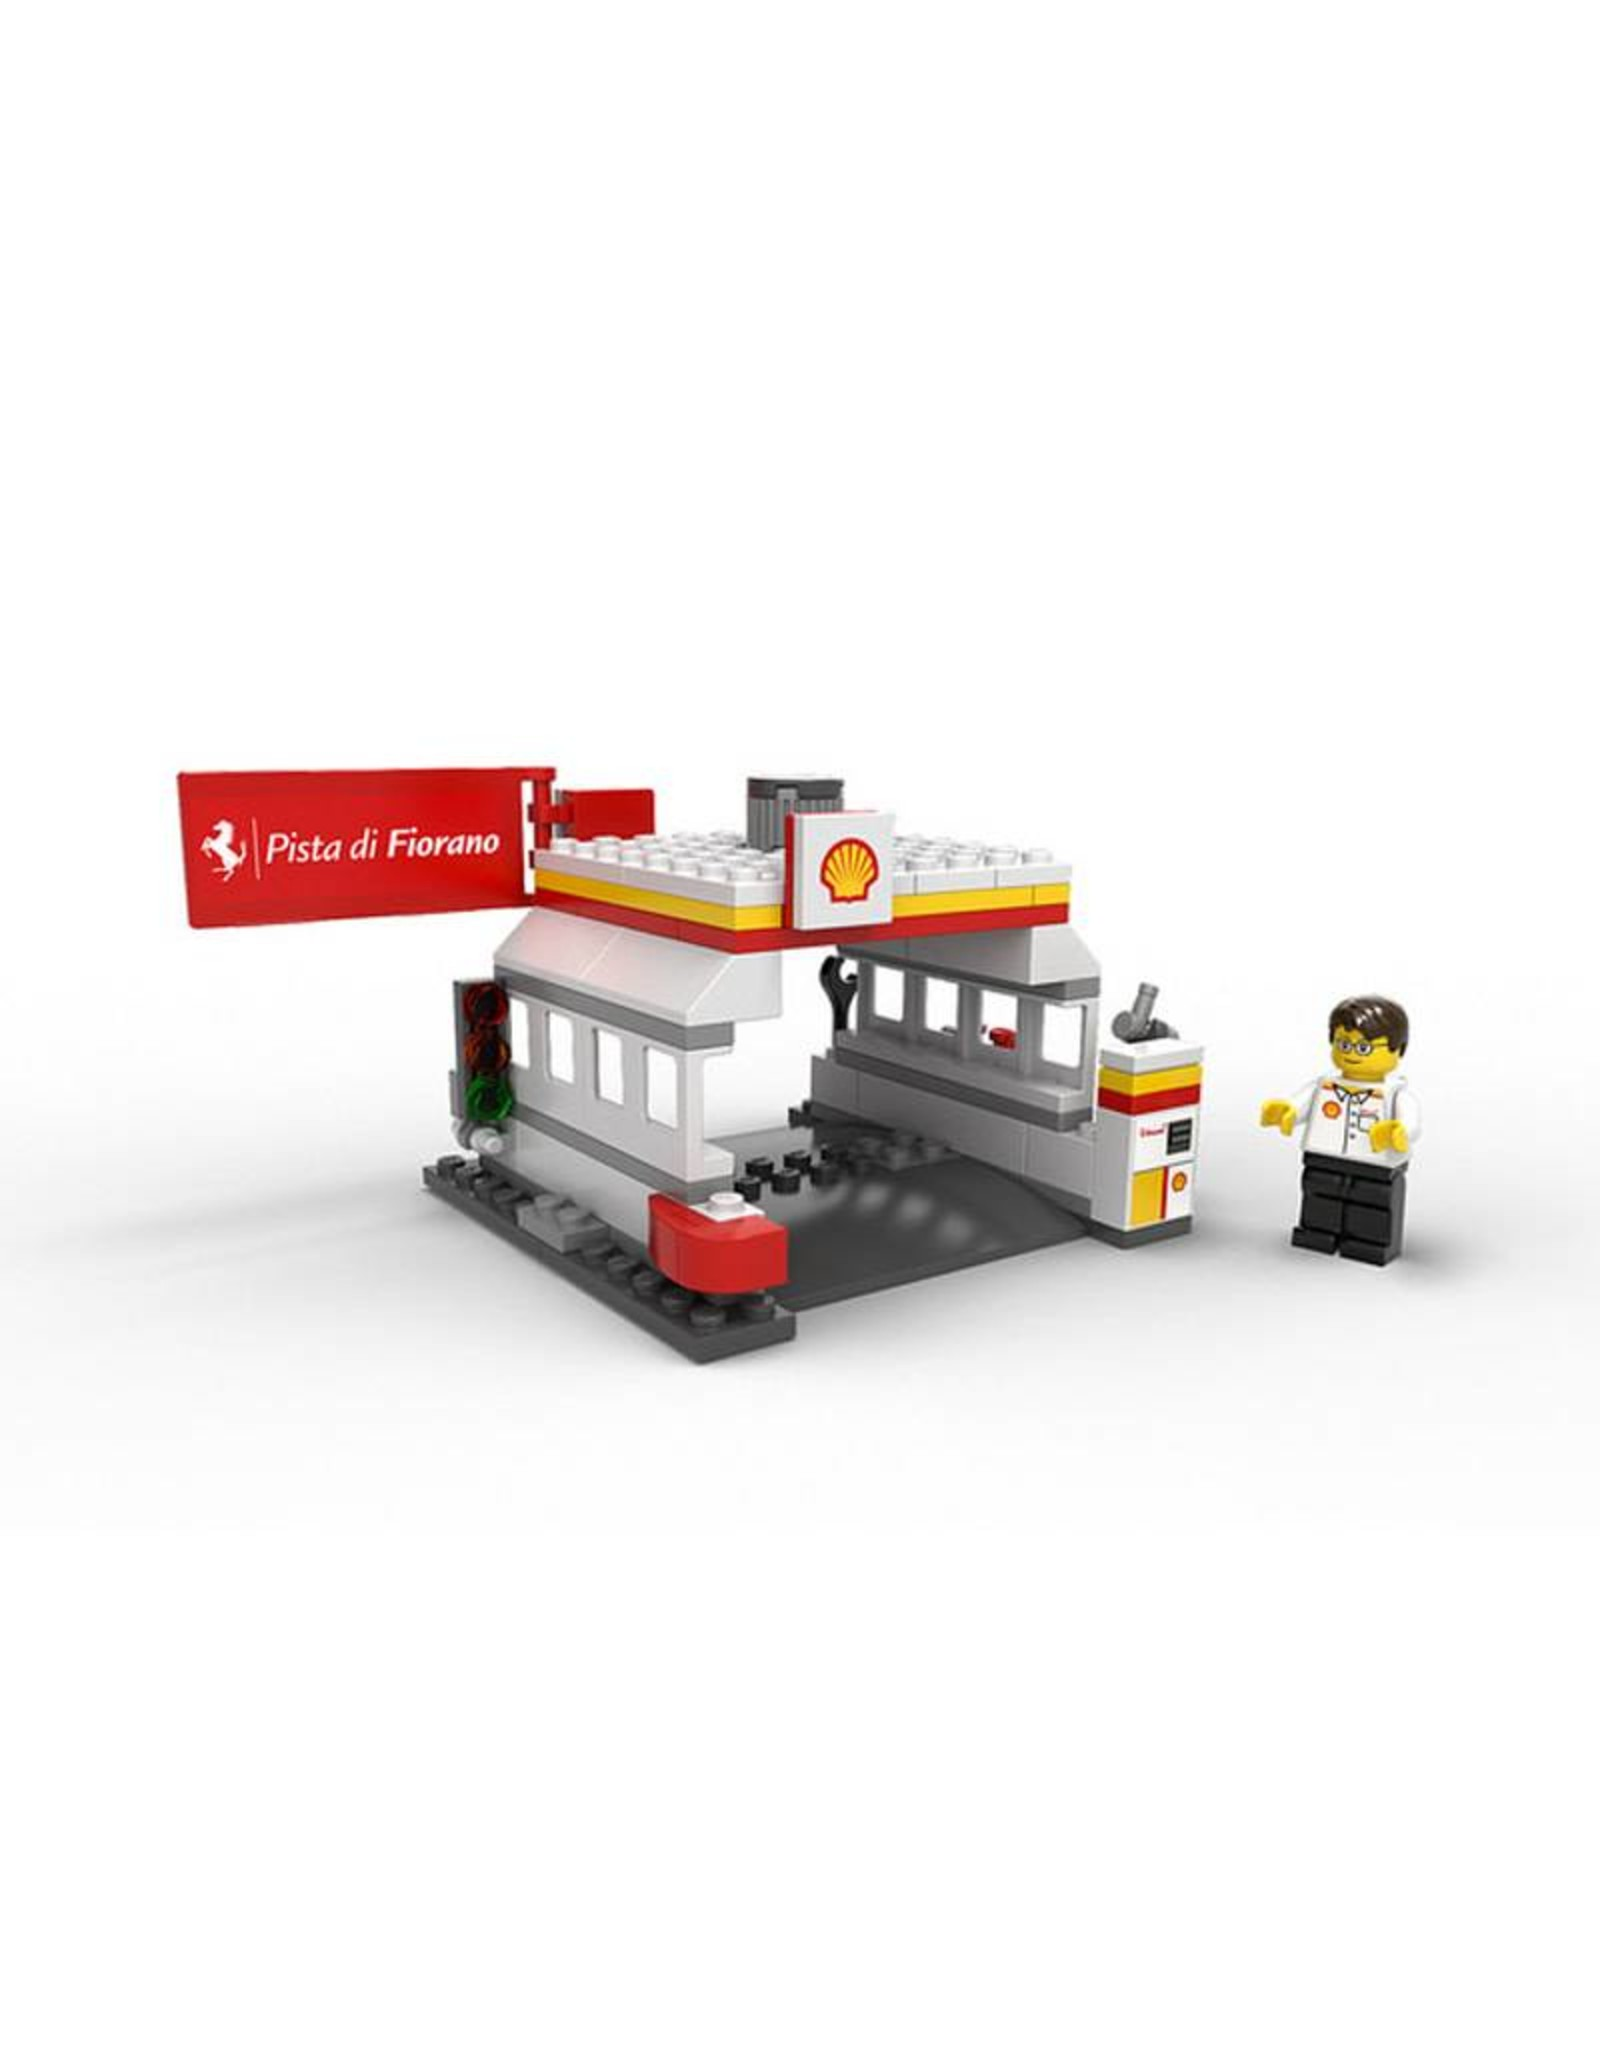 LEGO LEGO 40195 Shell Station V-POWER